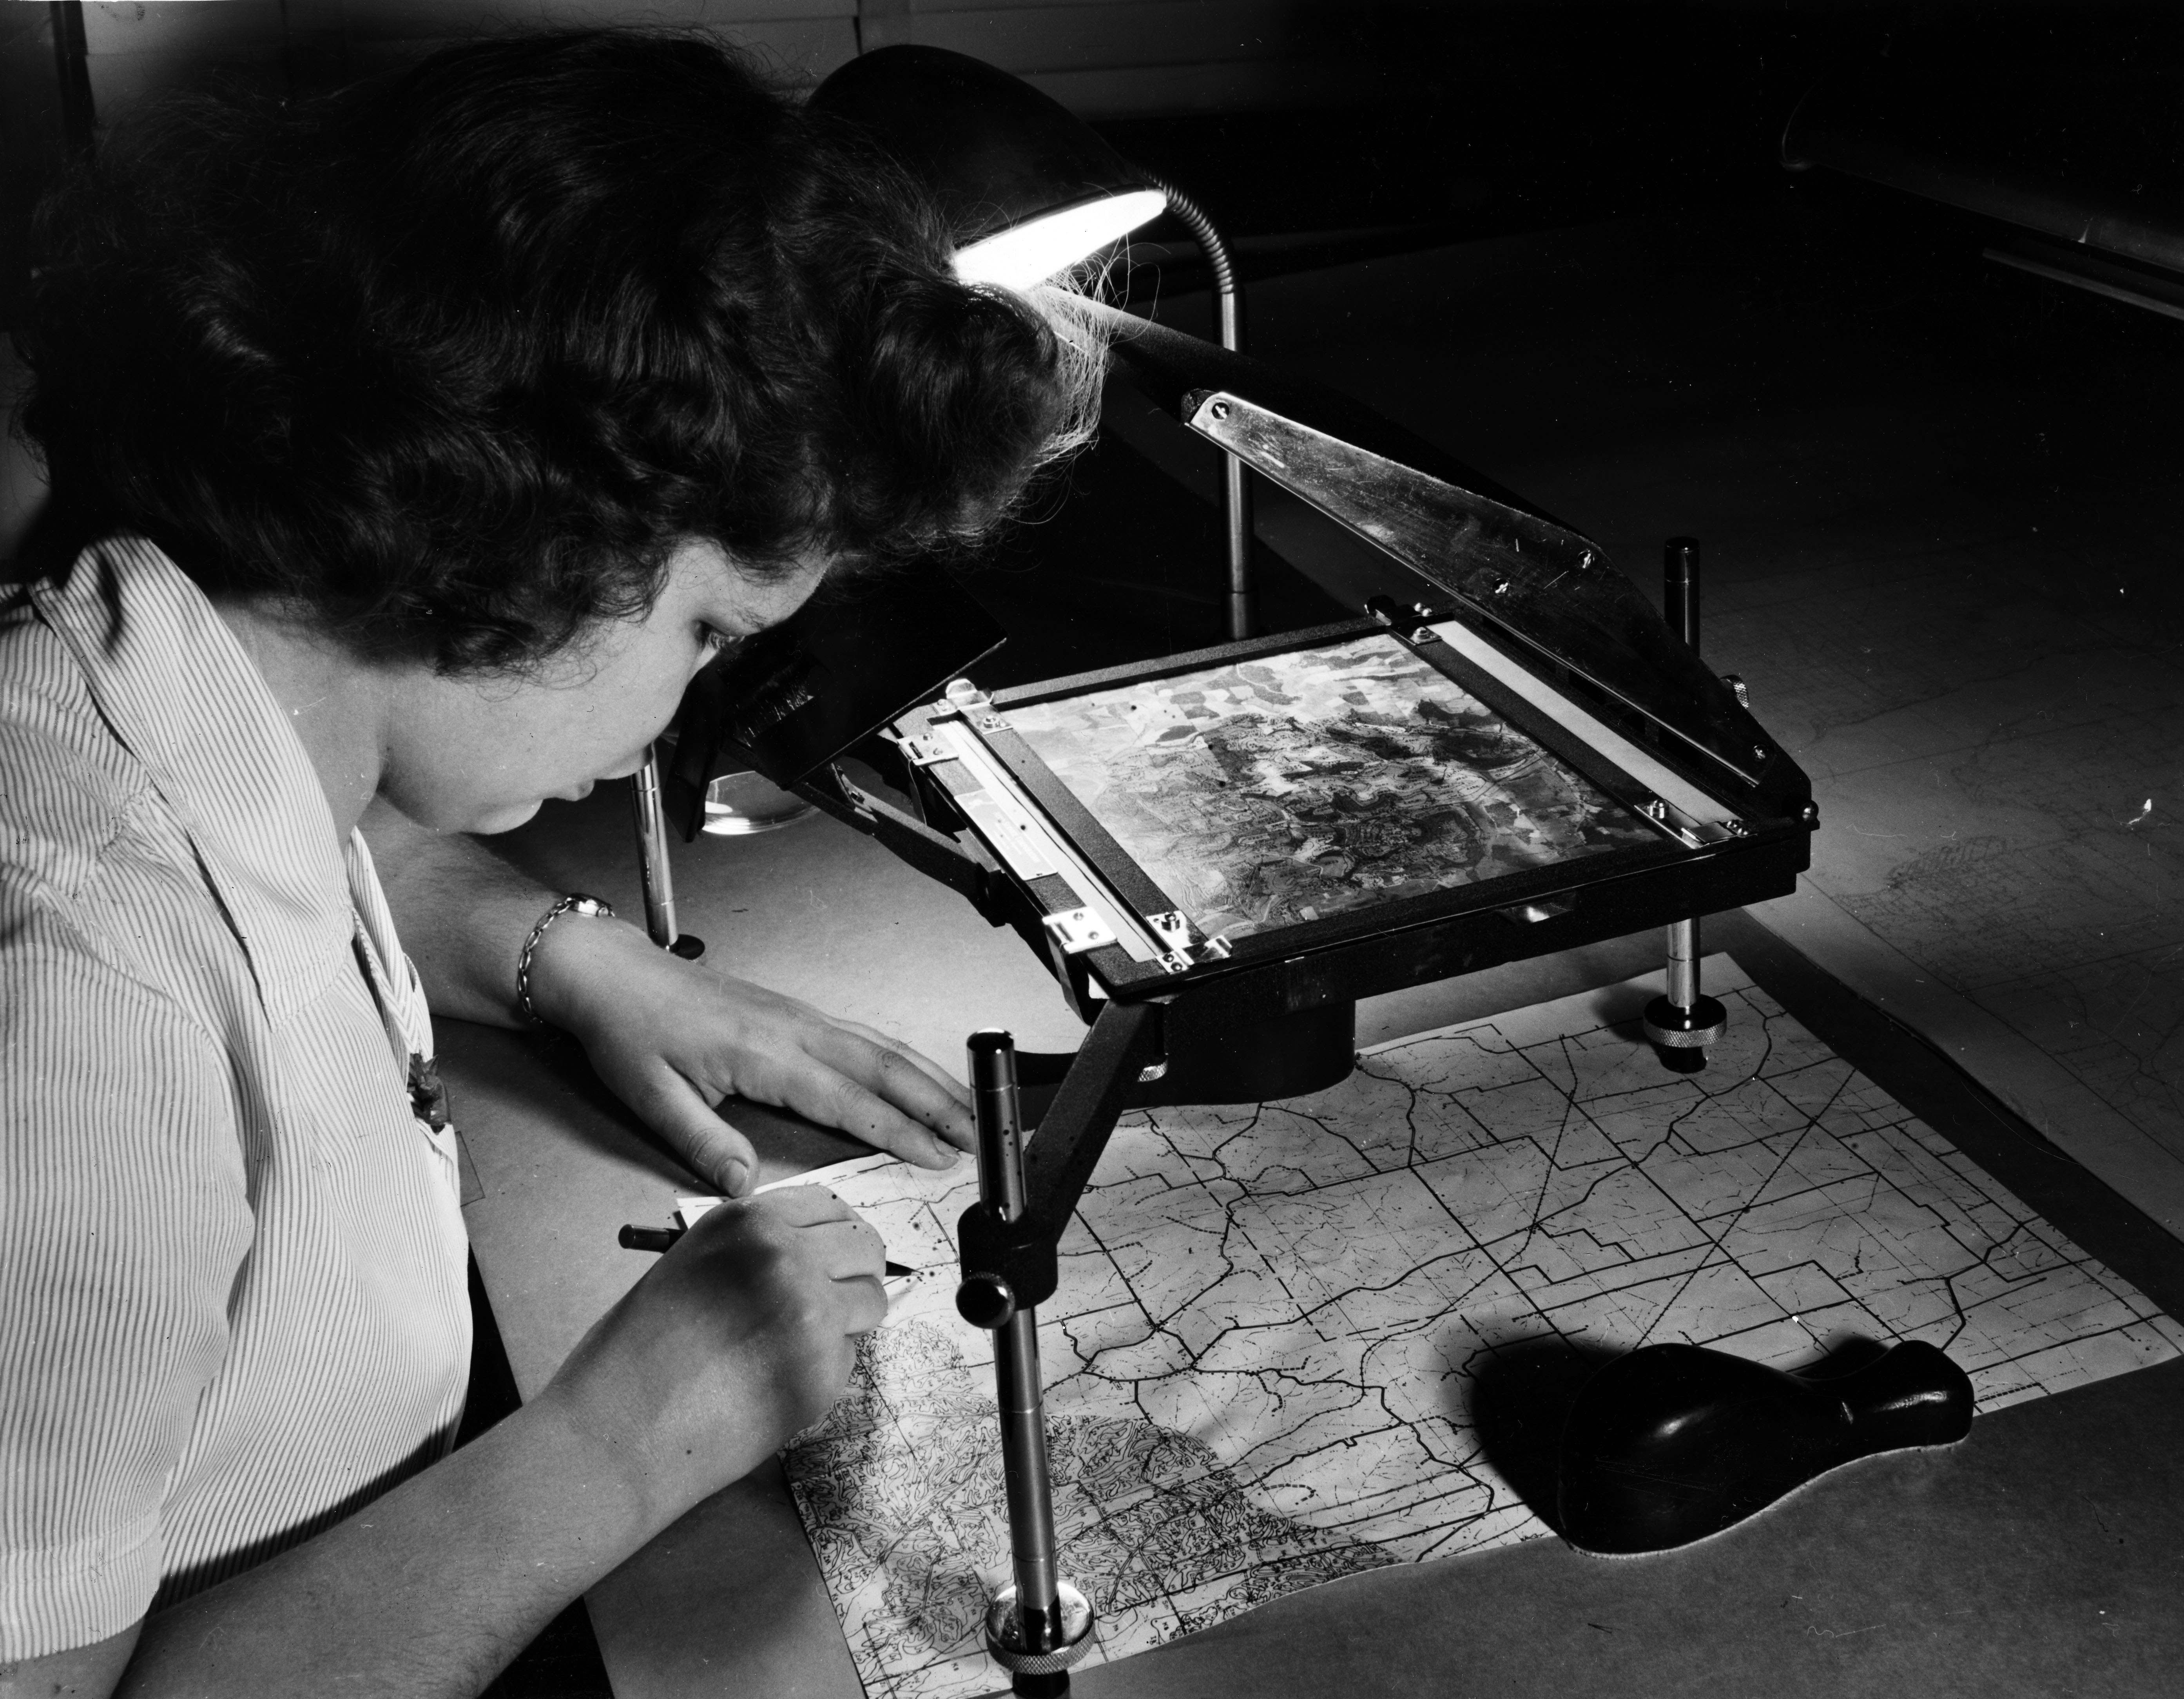 Modern soil surveys began in Duplin County in 1959. They included the use of aerial photography and mapping to develop more accurate and useful soil maps.